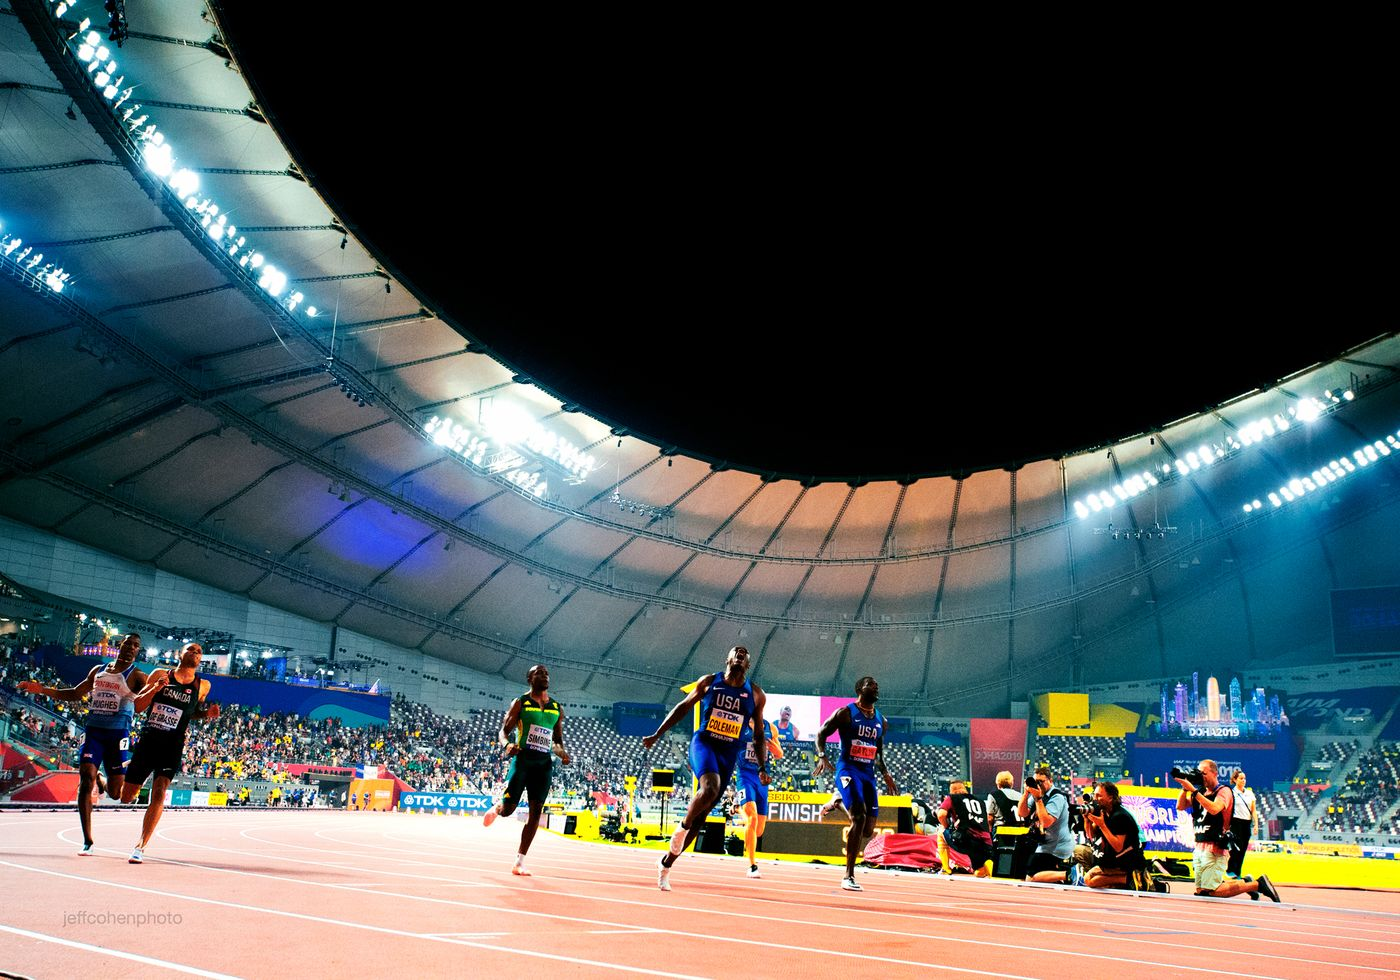 2019-DOHA-WC-day-2-coleman-100m-win--4123---jeff-cohen-photo--web.jpg